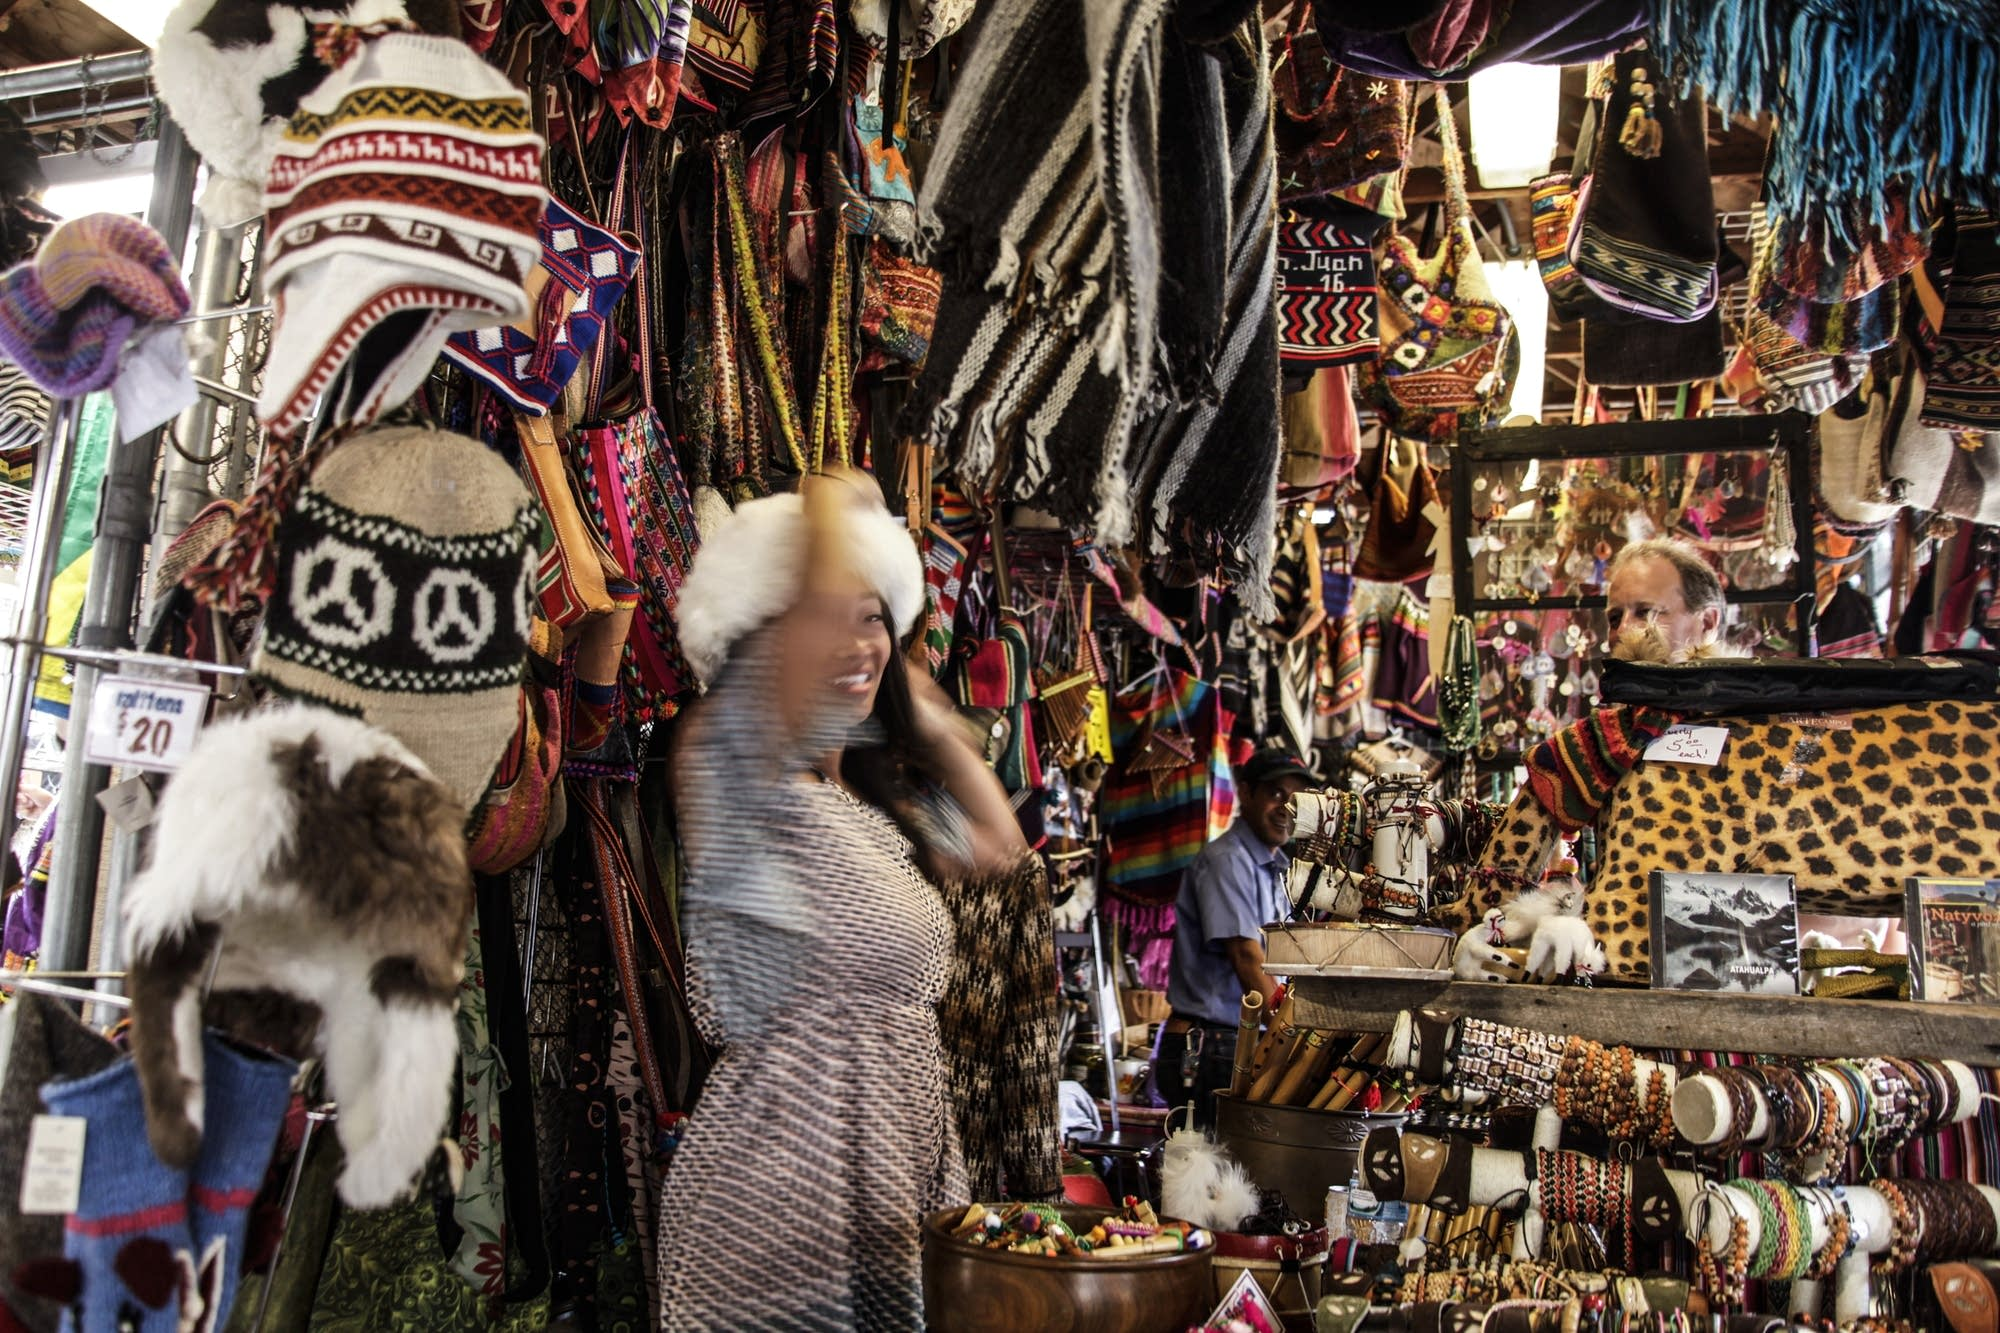 Inside a Bolivian merchandise store, a woman tries and alpaca hat.